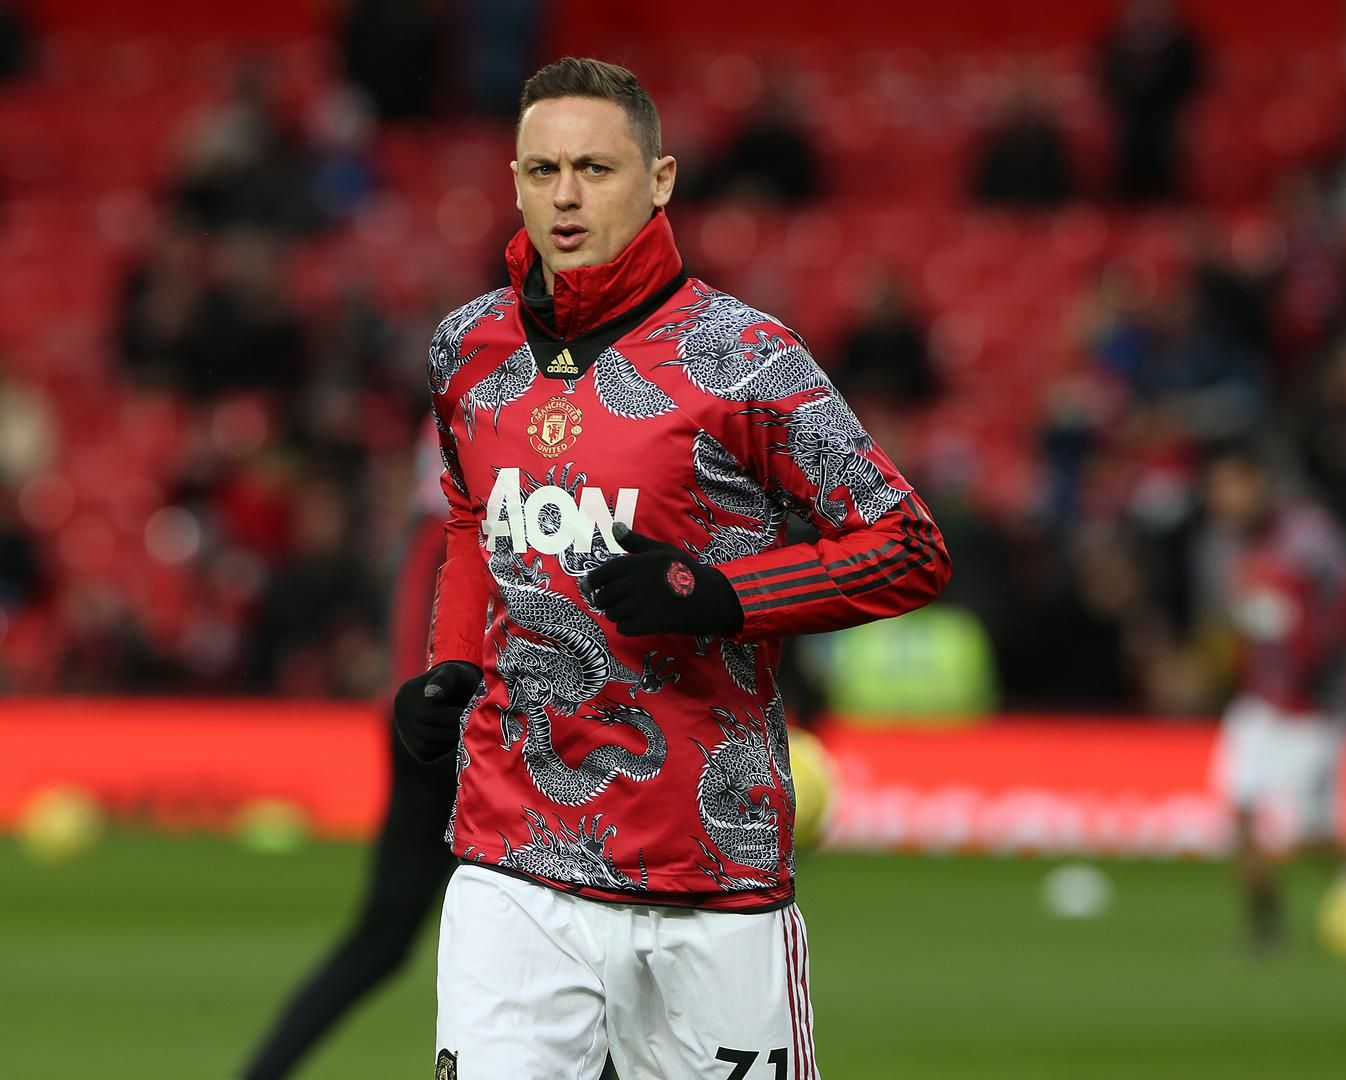 Match Gallery Man Utd V Norwich 11 January 2020 Manchester United In 2020 Manchester United Premier League Manchester United Football Club Manchester United Football